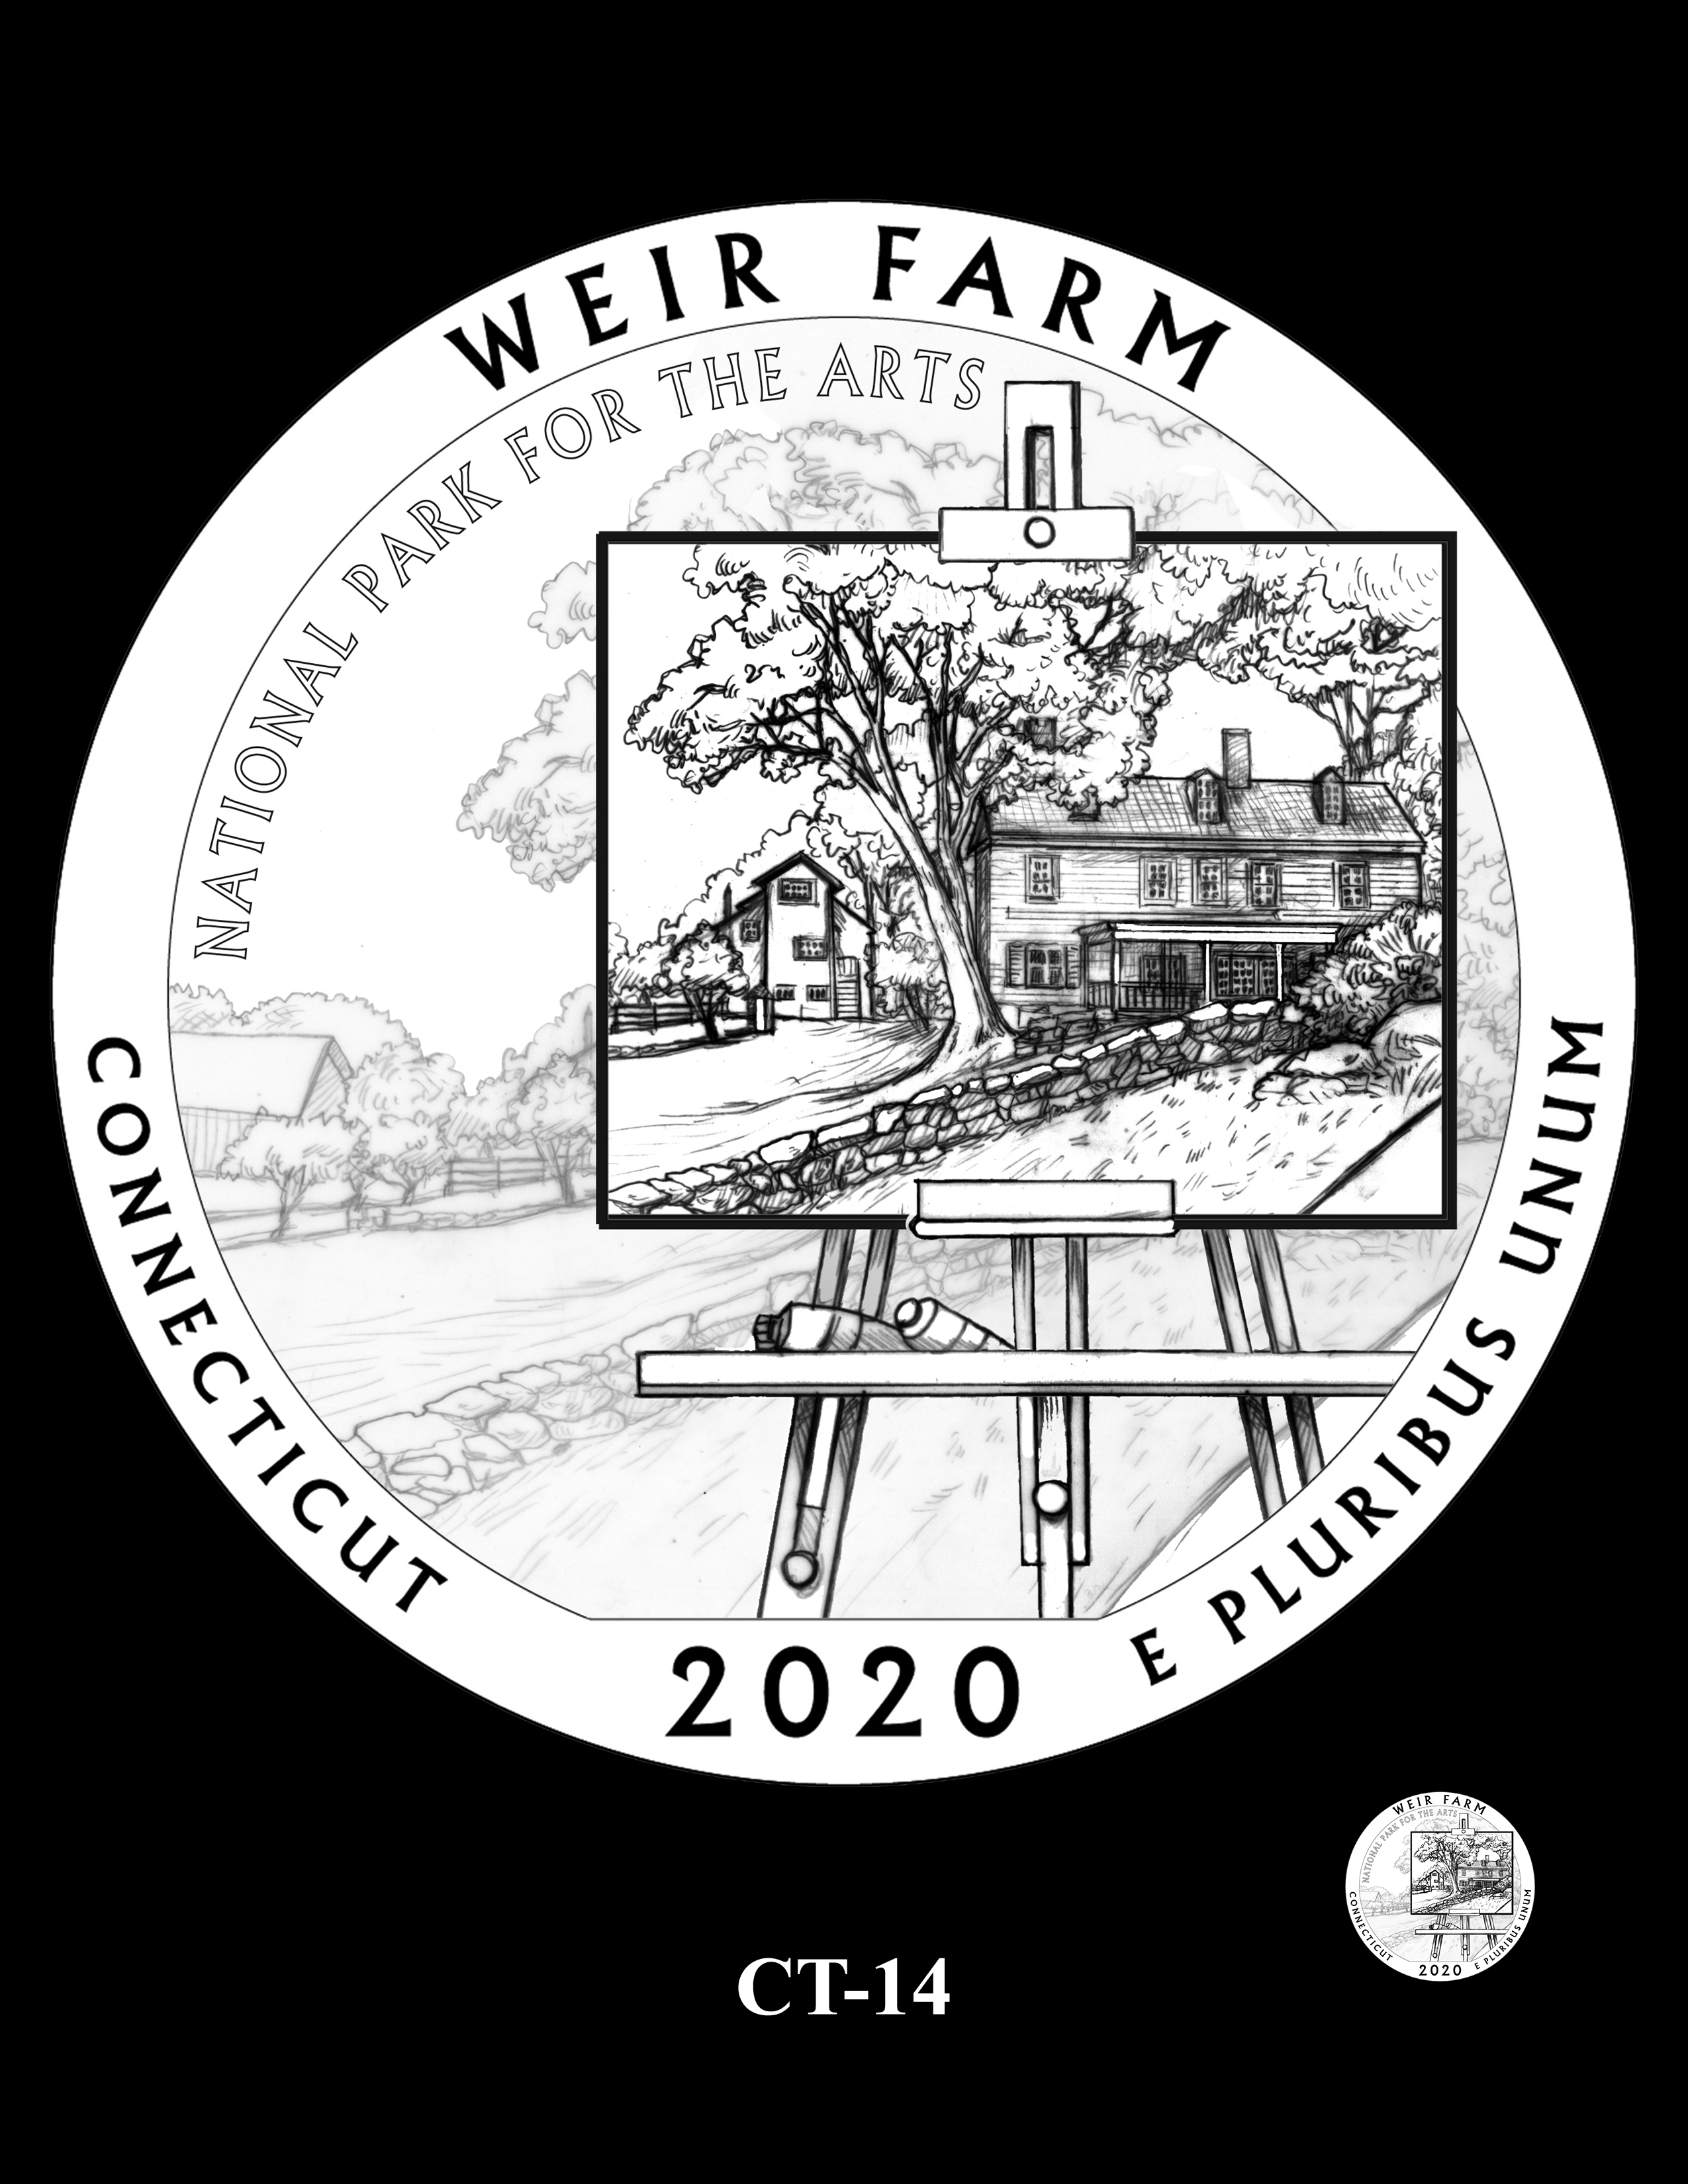 CT-14 -- 2020 America the Beautiful Quarters® Program